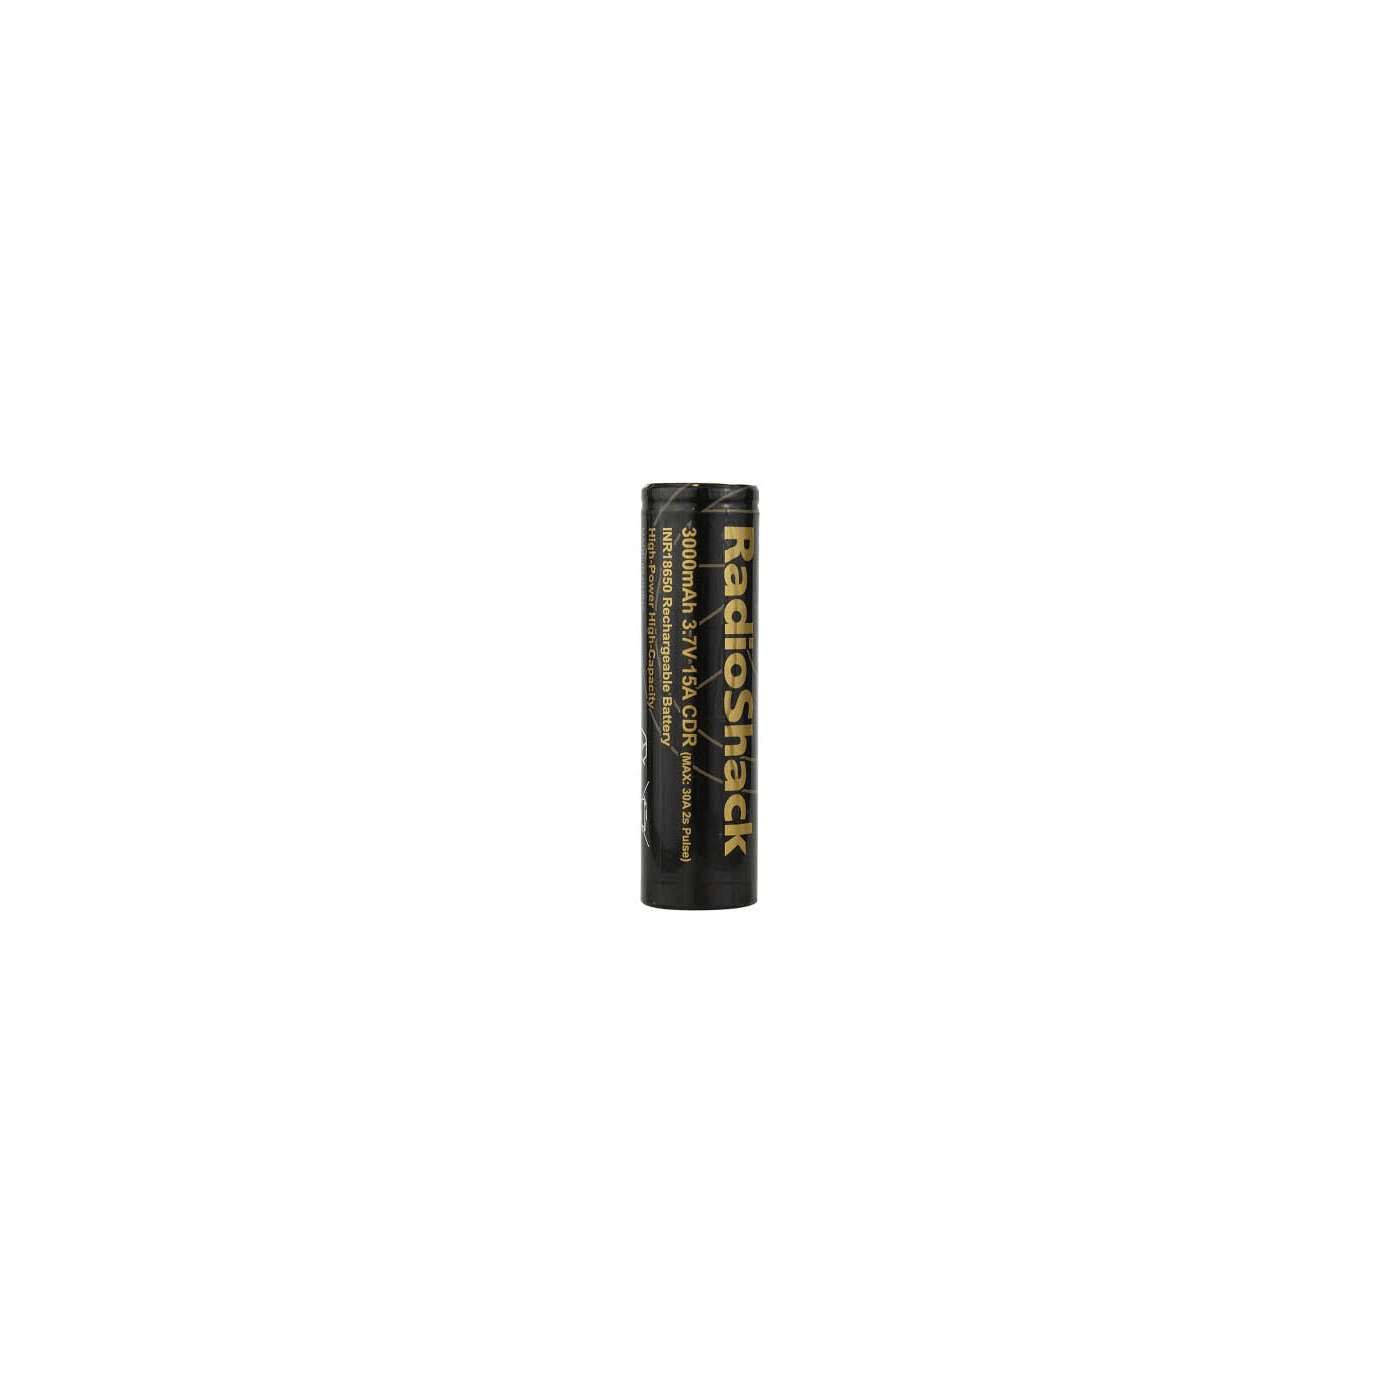 RadioShack INR 18650 15A 3000 mAh Battery - Single